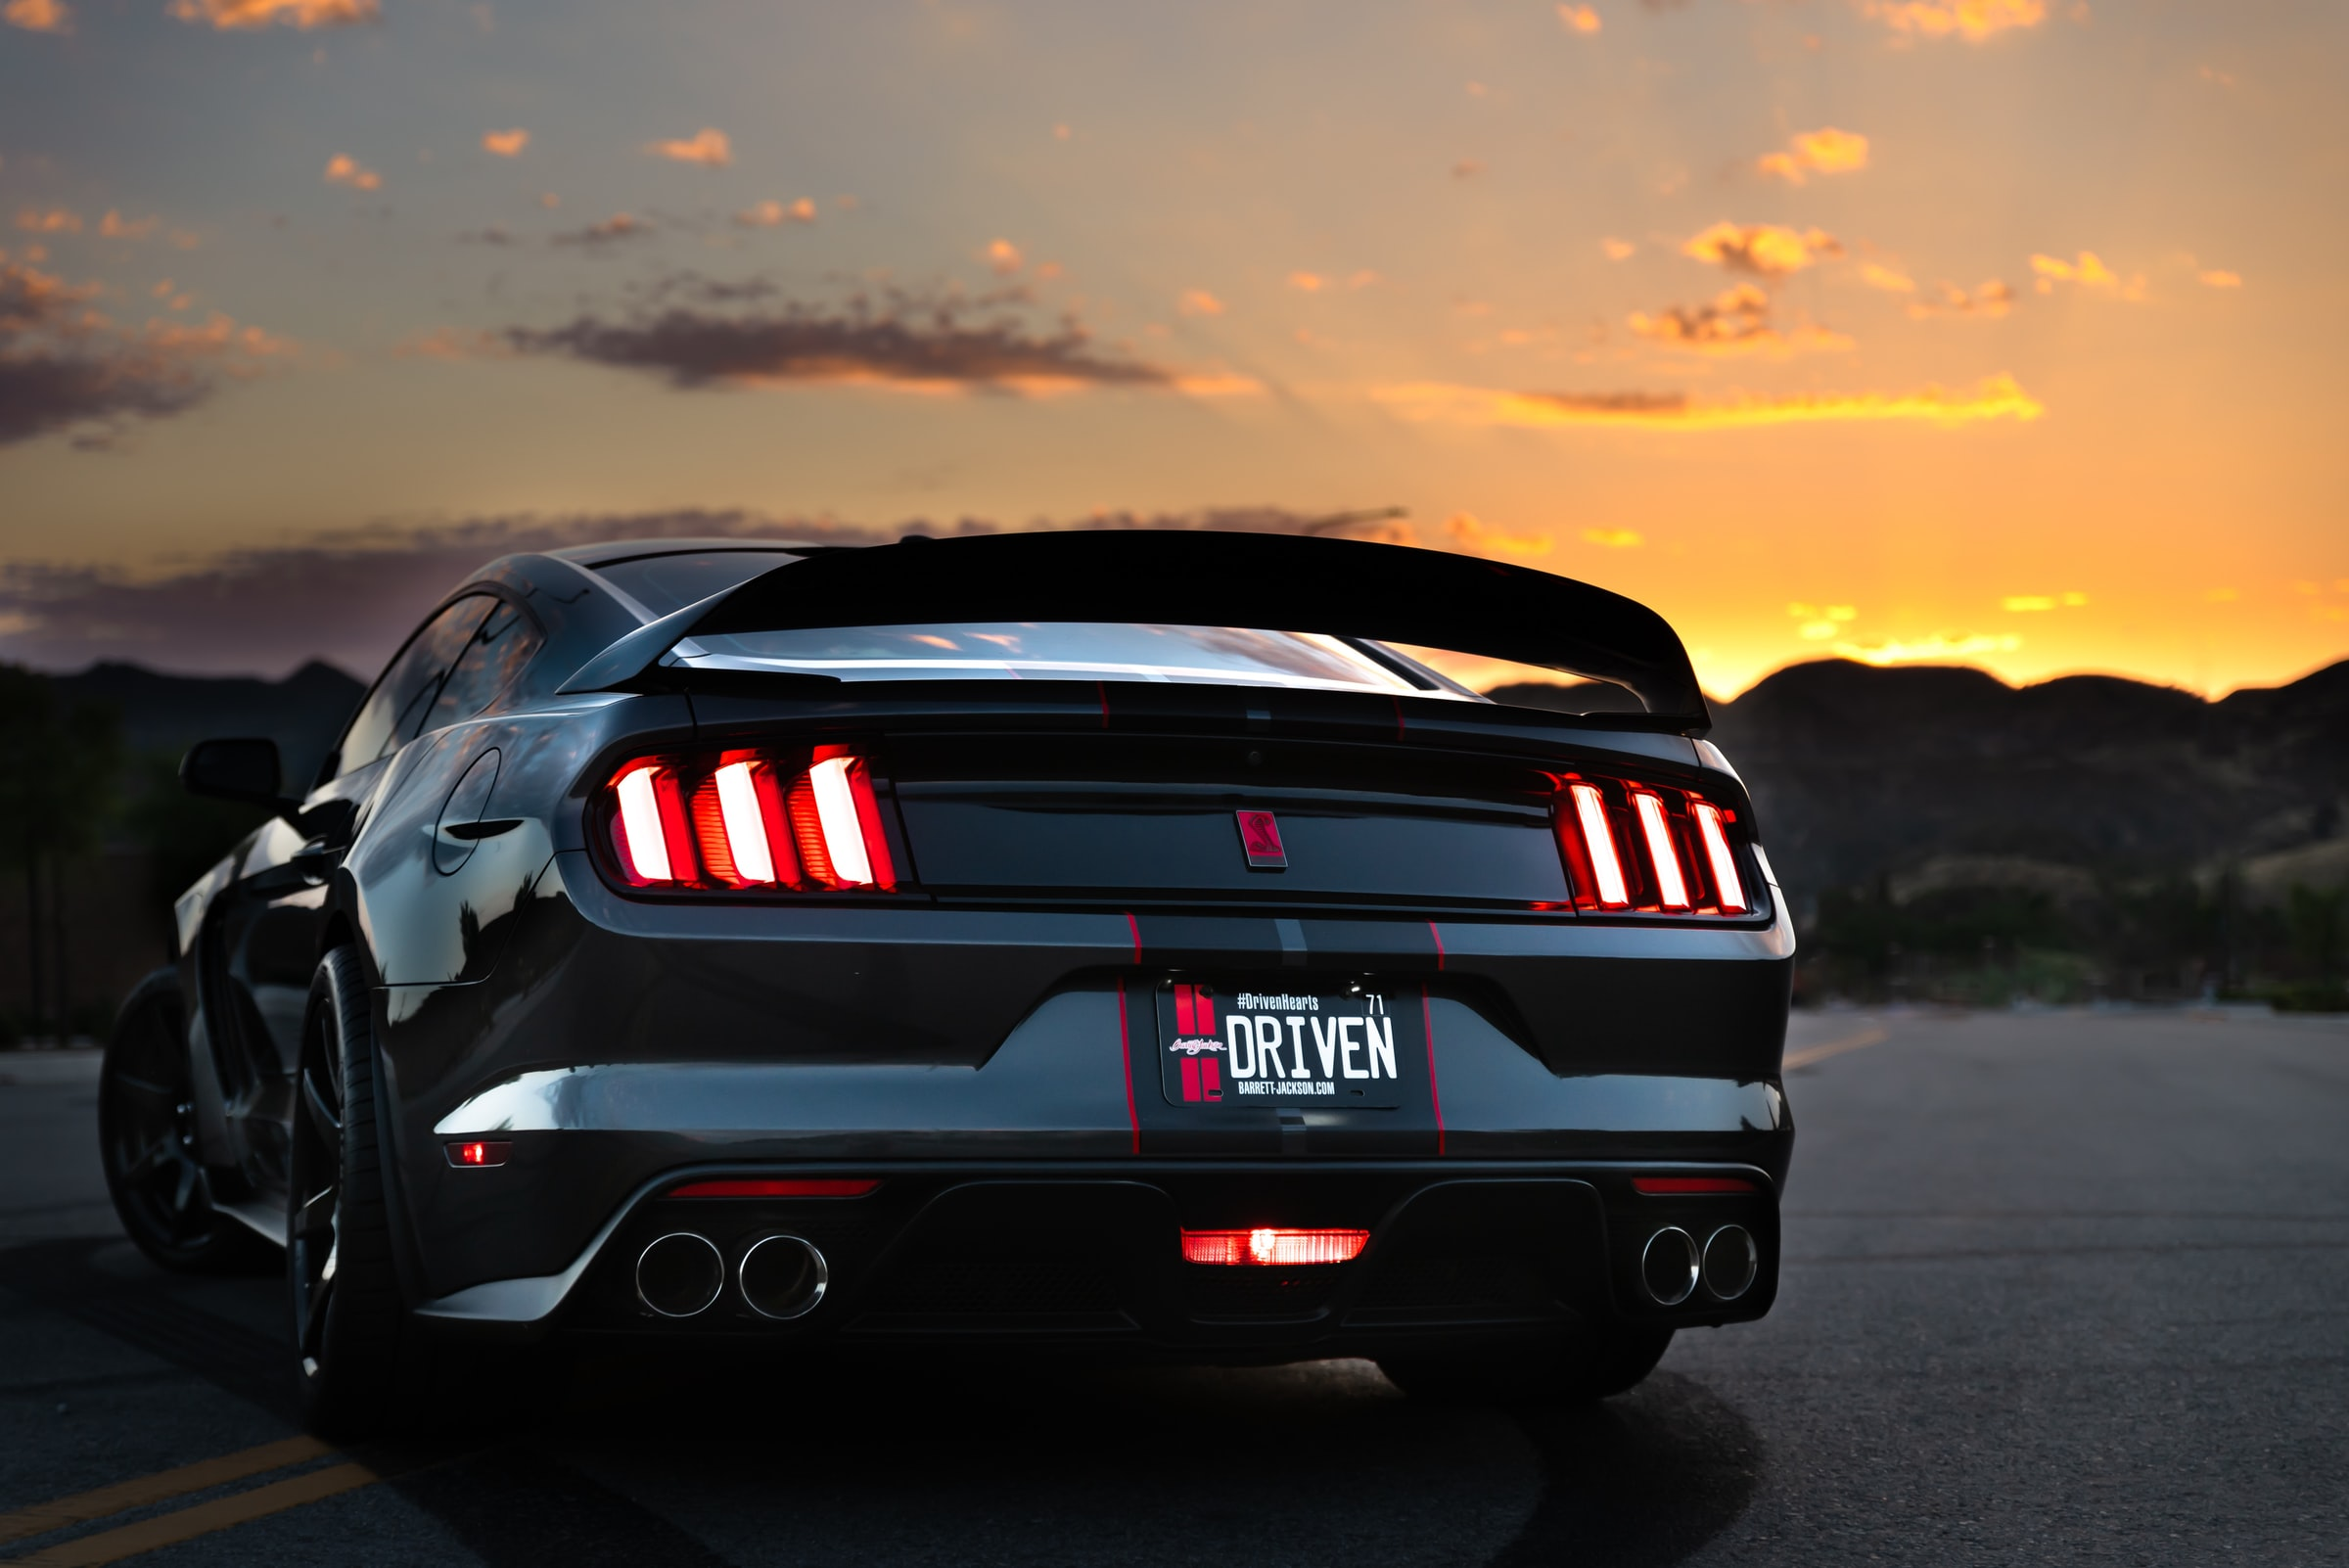 Ford Mustang Vehicles Are Losing Their Shine. Why Is That The Case?